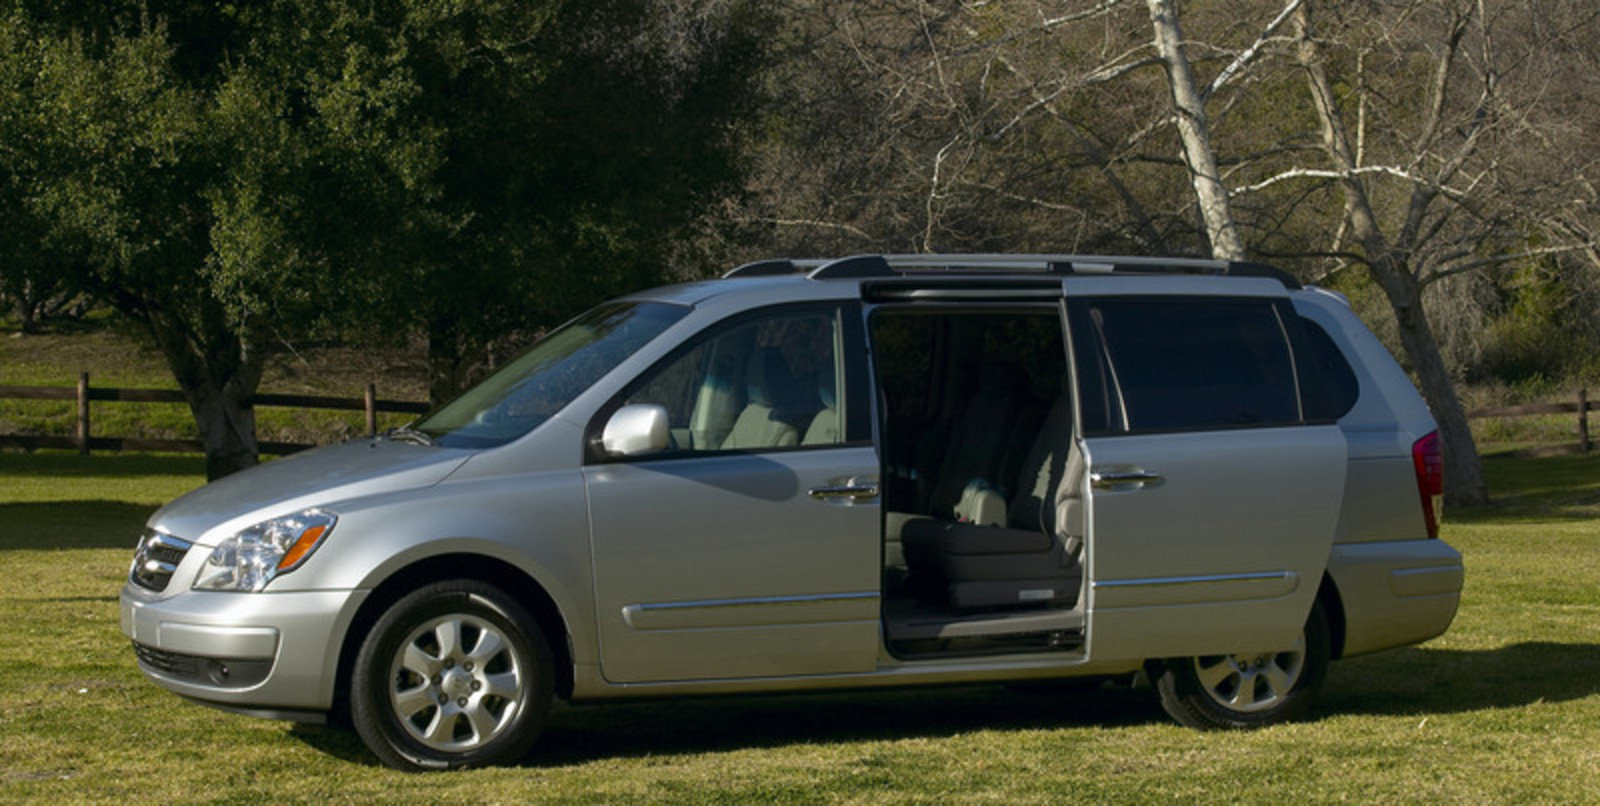 2007 hyundai entourage picture 40079 car review top. Black Bedroom Furniture Sets. Home Design Ideas